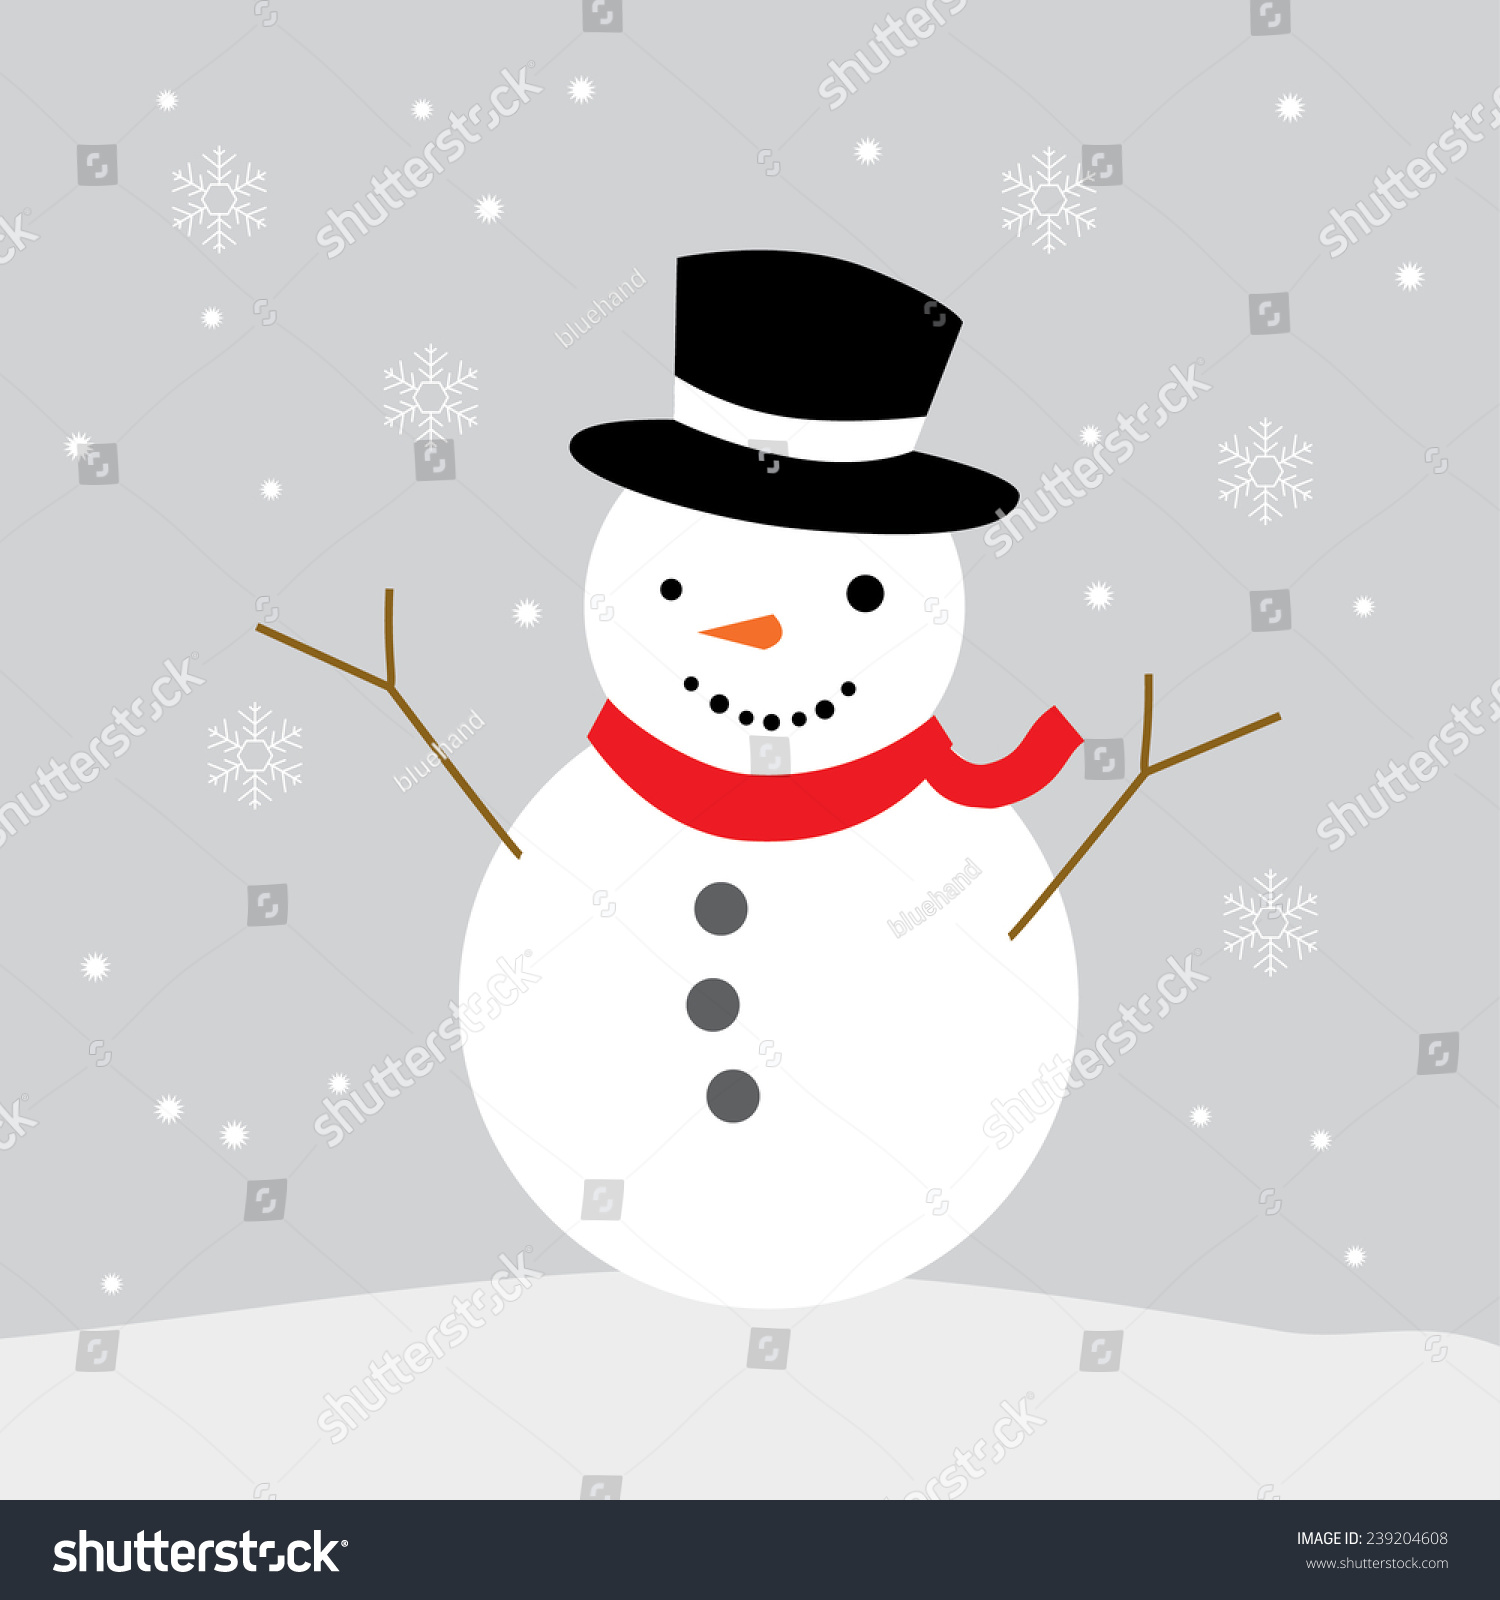 Snowman Drawing Vector Graphic Illustrate Eps 10 Stock Vector ...